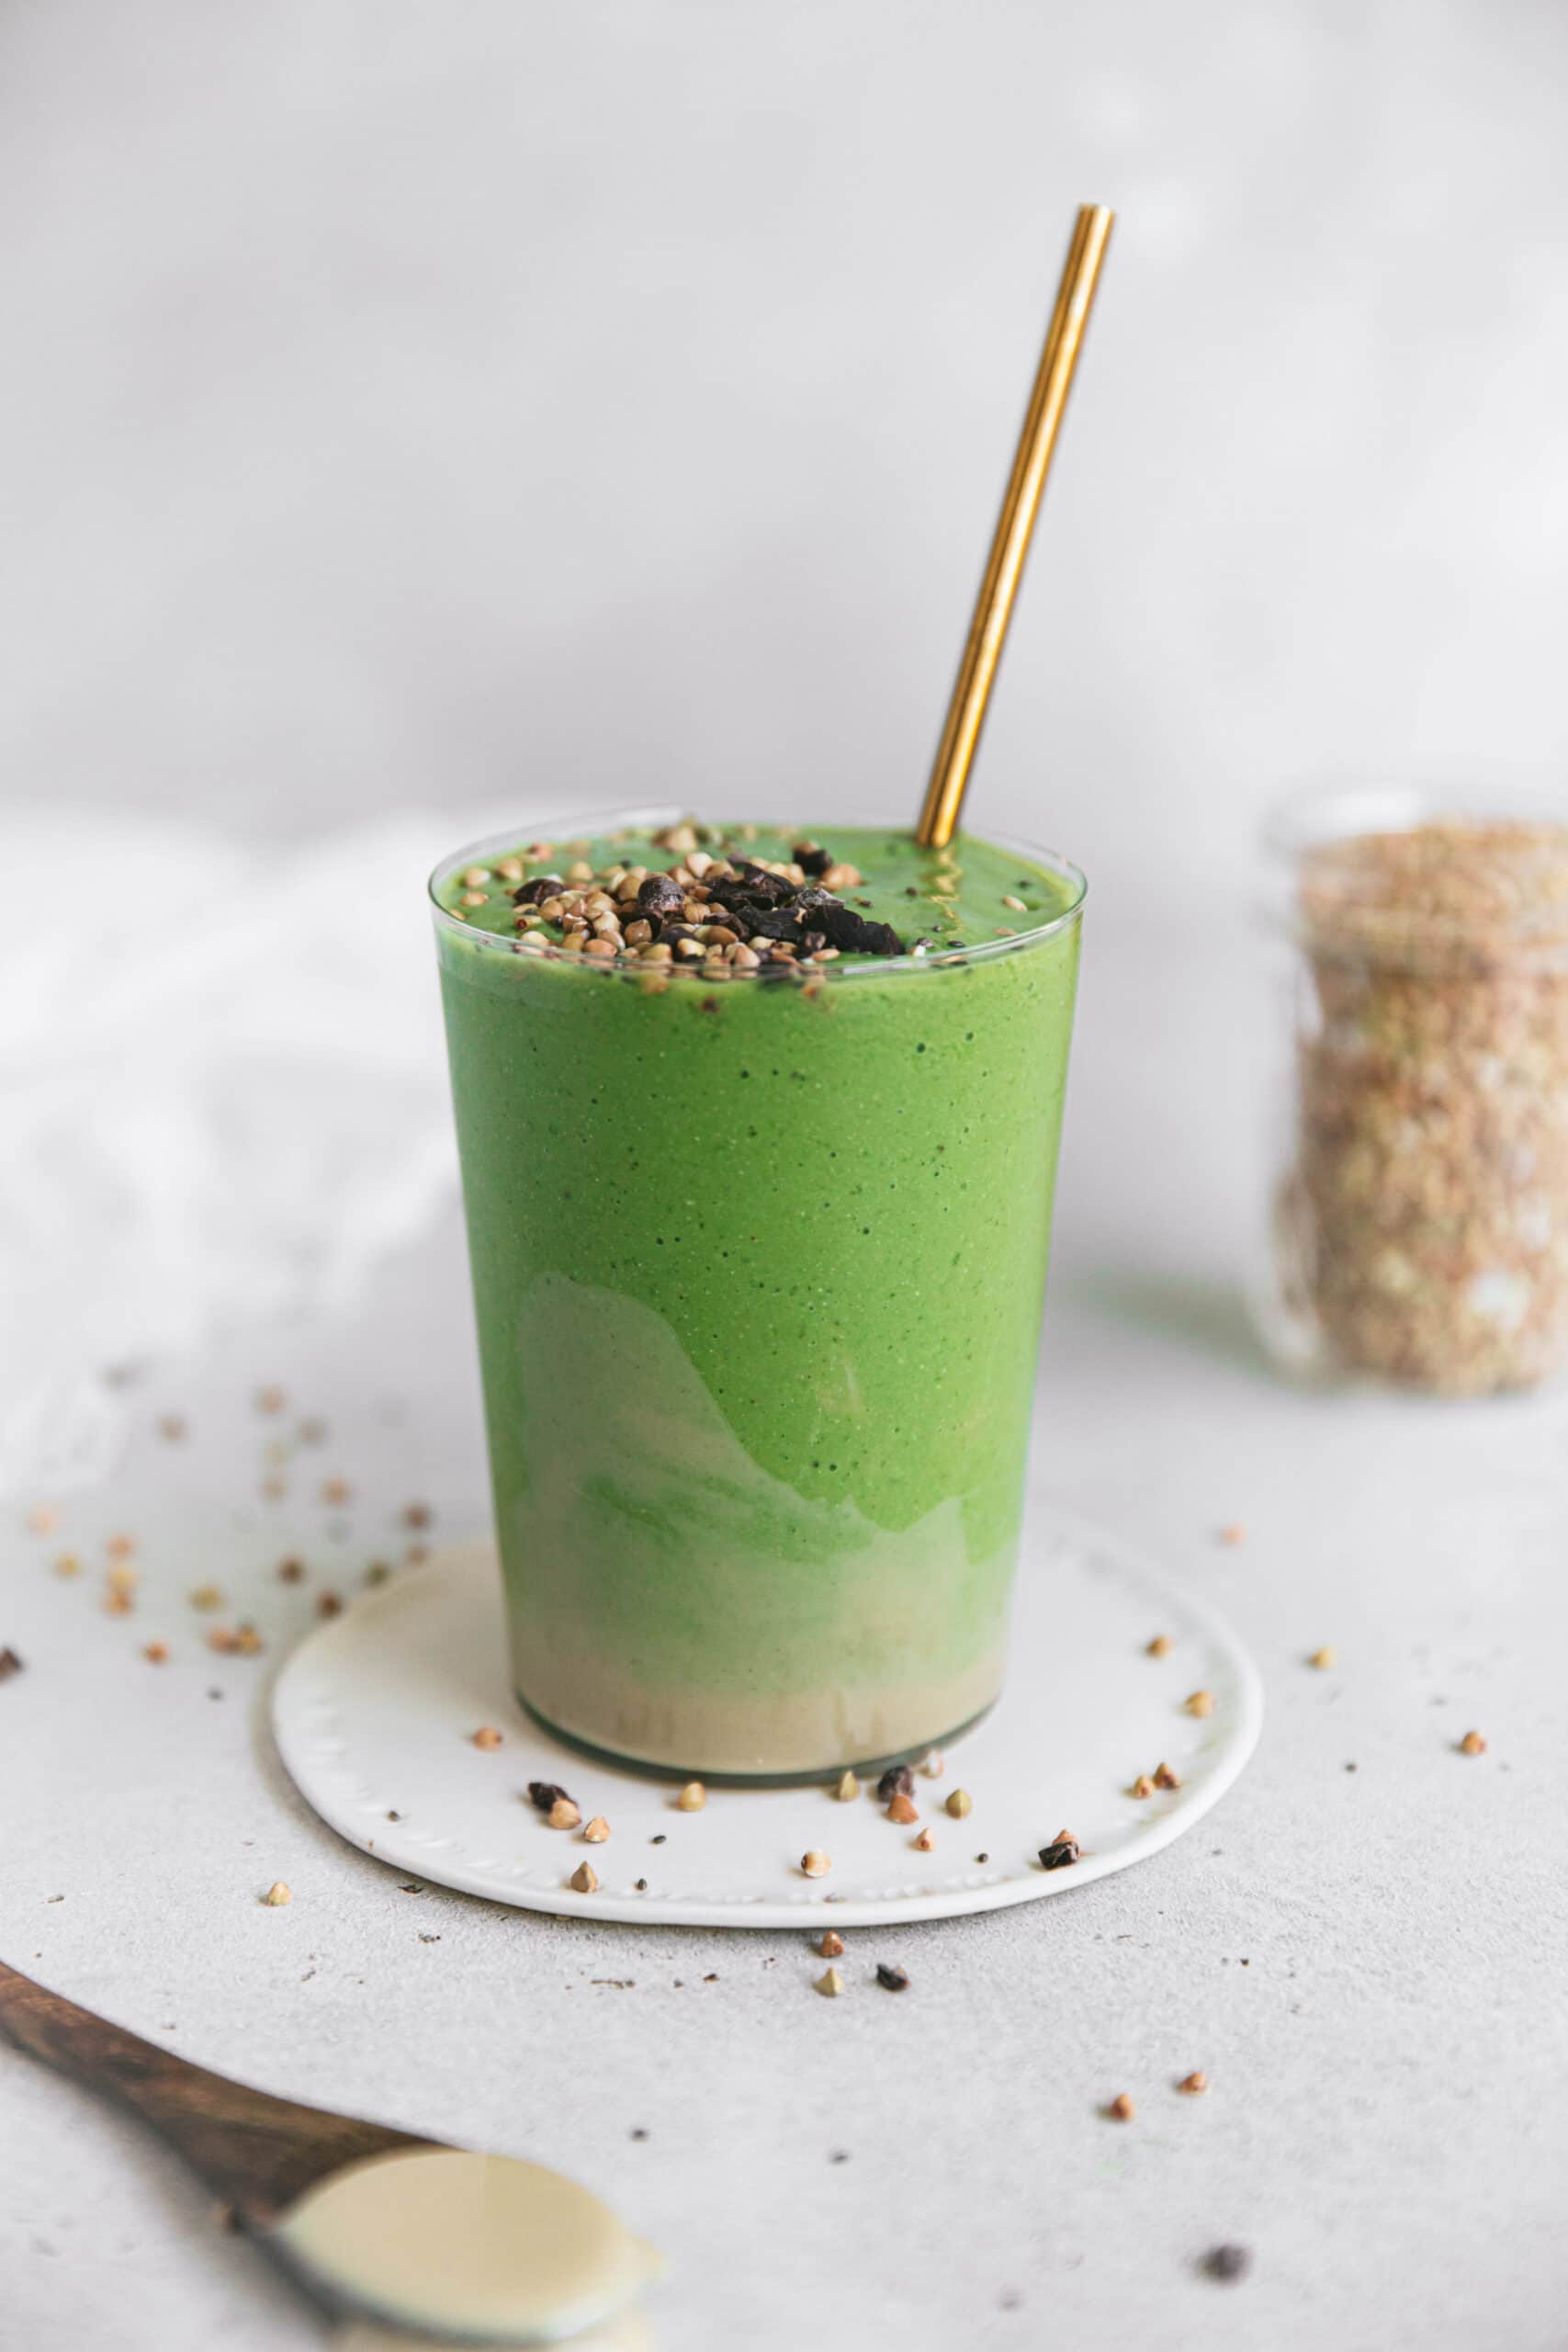 green smoothie in glass tumbler with tahini